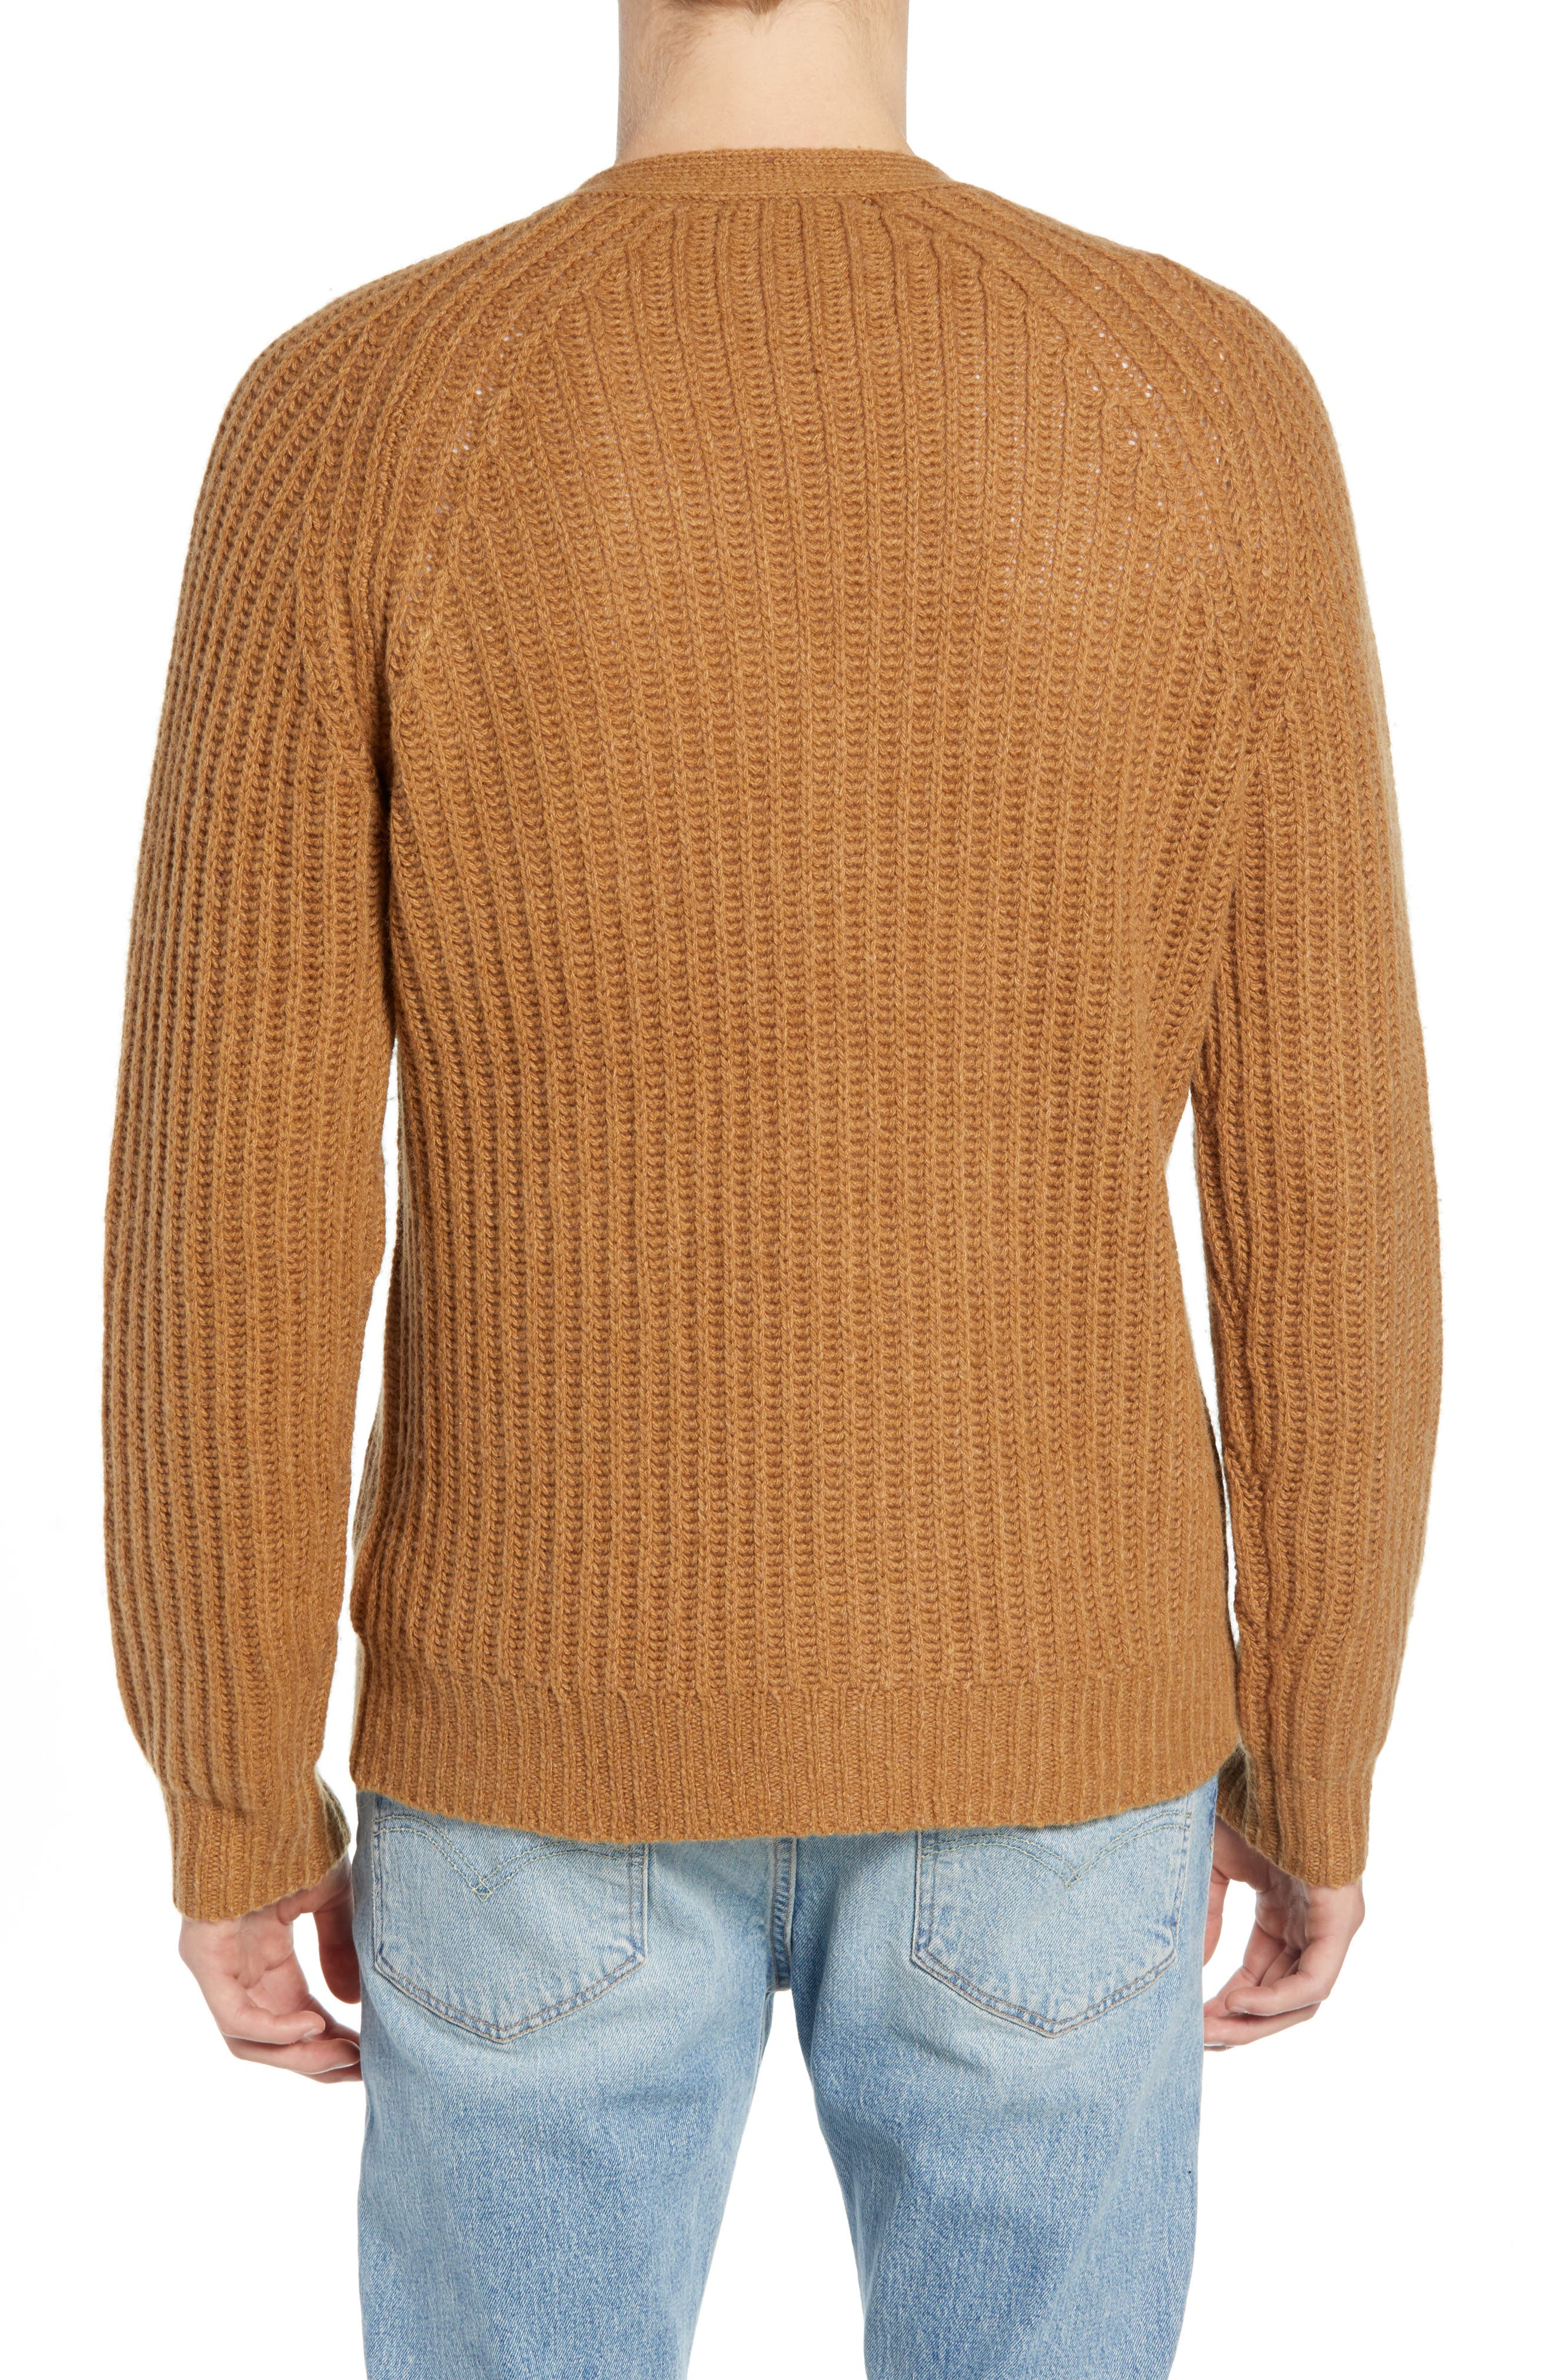 Supersoft Wool Blend Cardigan,                             Alternate thumbnail 2, color,                             RICH CAMEL